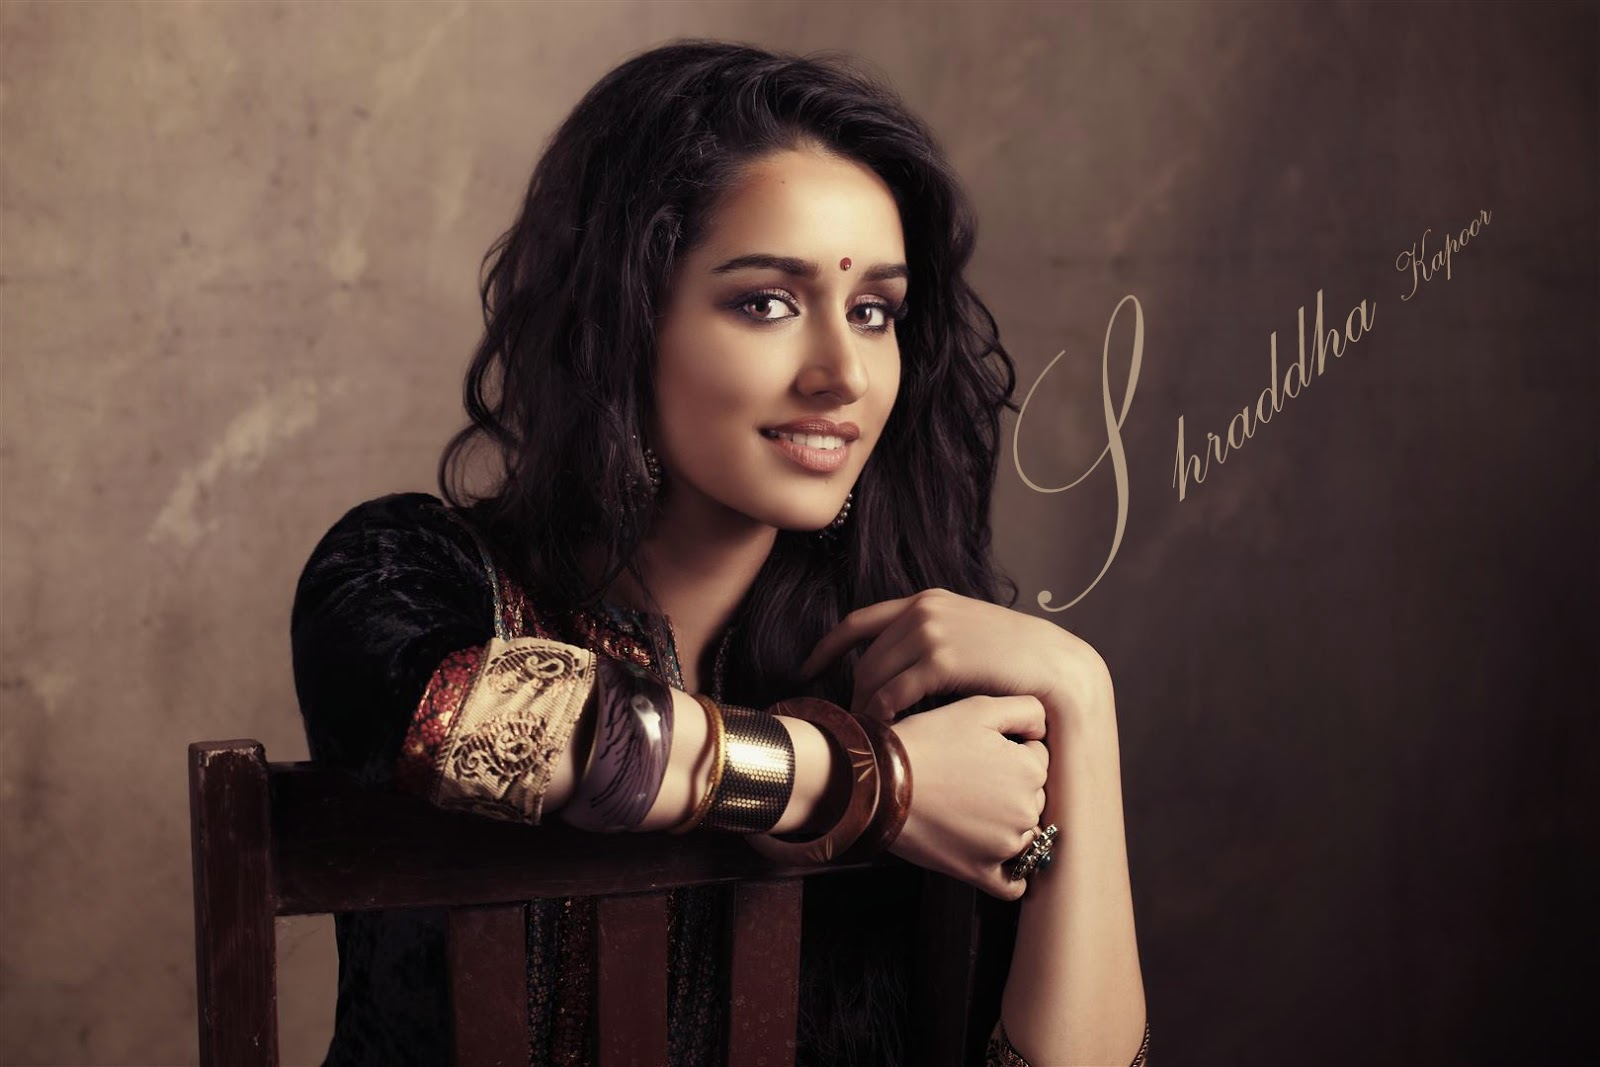 HD Wallpapers Shraddha Kapoor HD Waallpapers Gallery Shraddha Kapoor 1600x1067